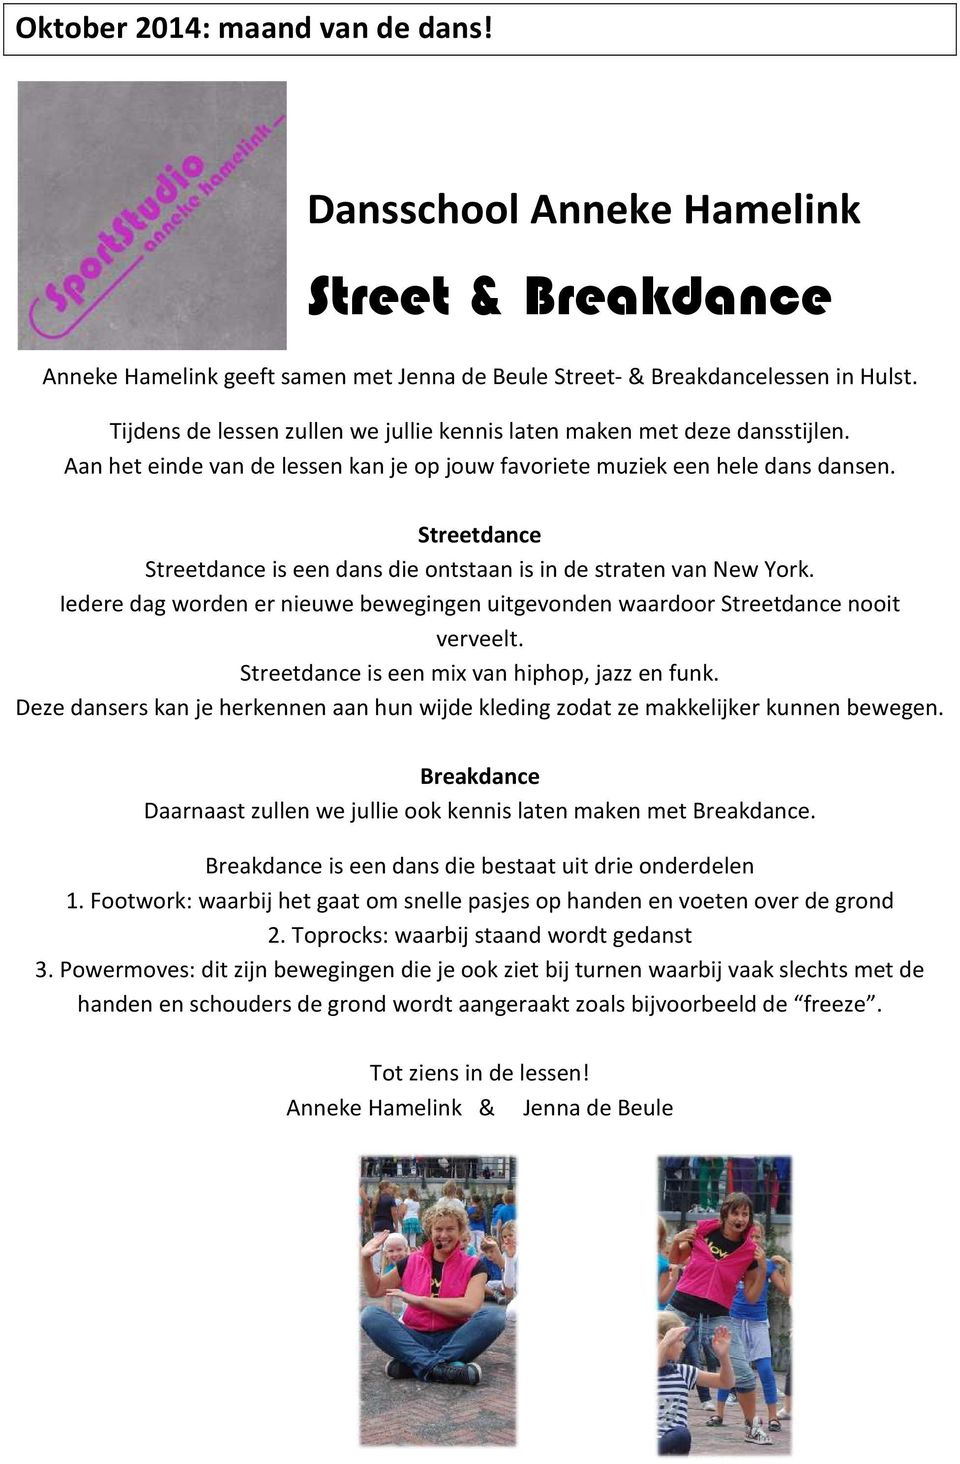 Streetdance Streetdance is een dans die ontstaan is in de straten van New York. Iedere dag worden er nieuwe bewegingen uitgevonden waardoor Streetdance nooit verveelt.